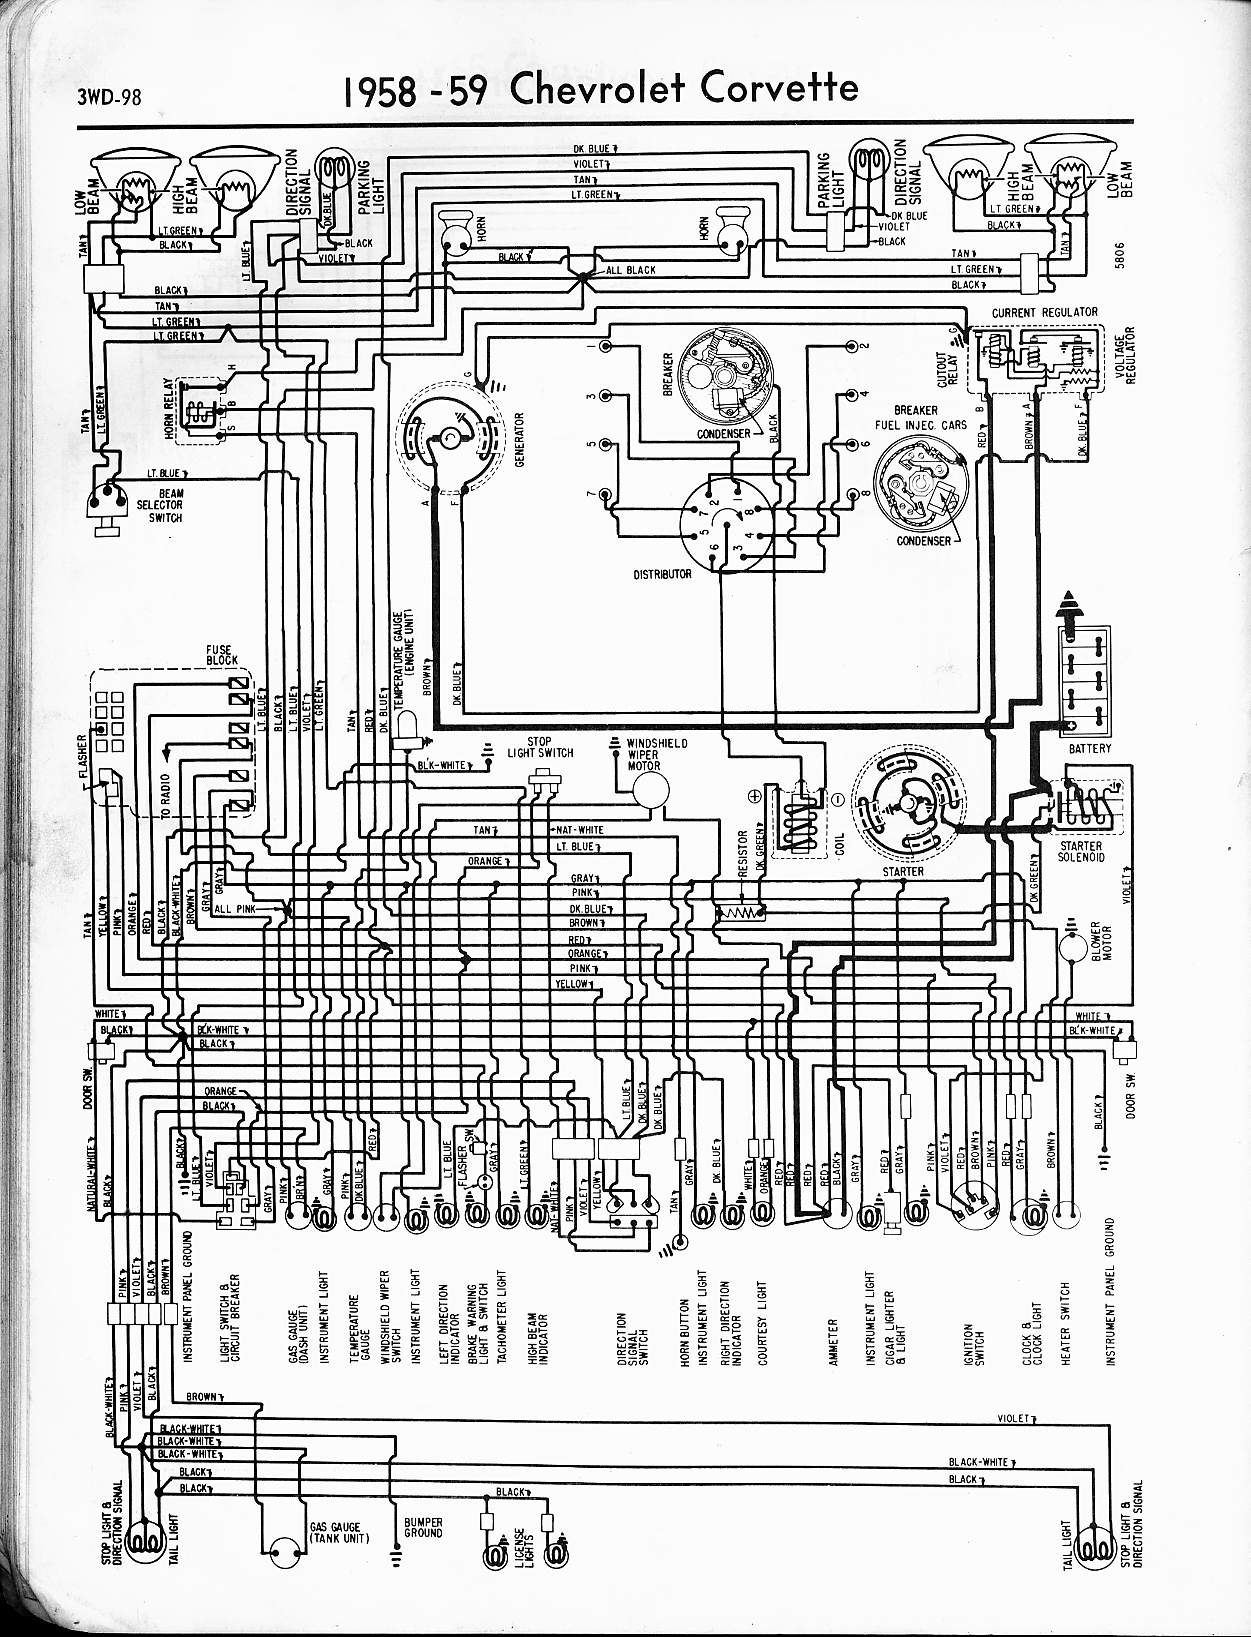 MWireChev58_3WD 098 57 65 chevy wiring diagrams 1965 C10 Wiring-Diagram at alyssarenee.co